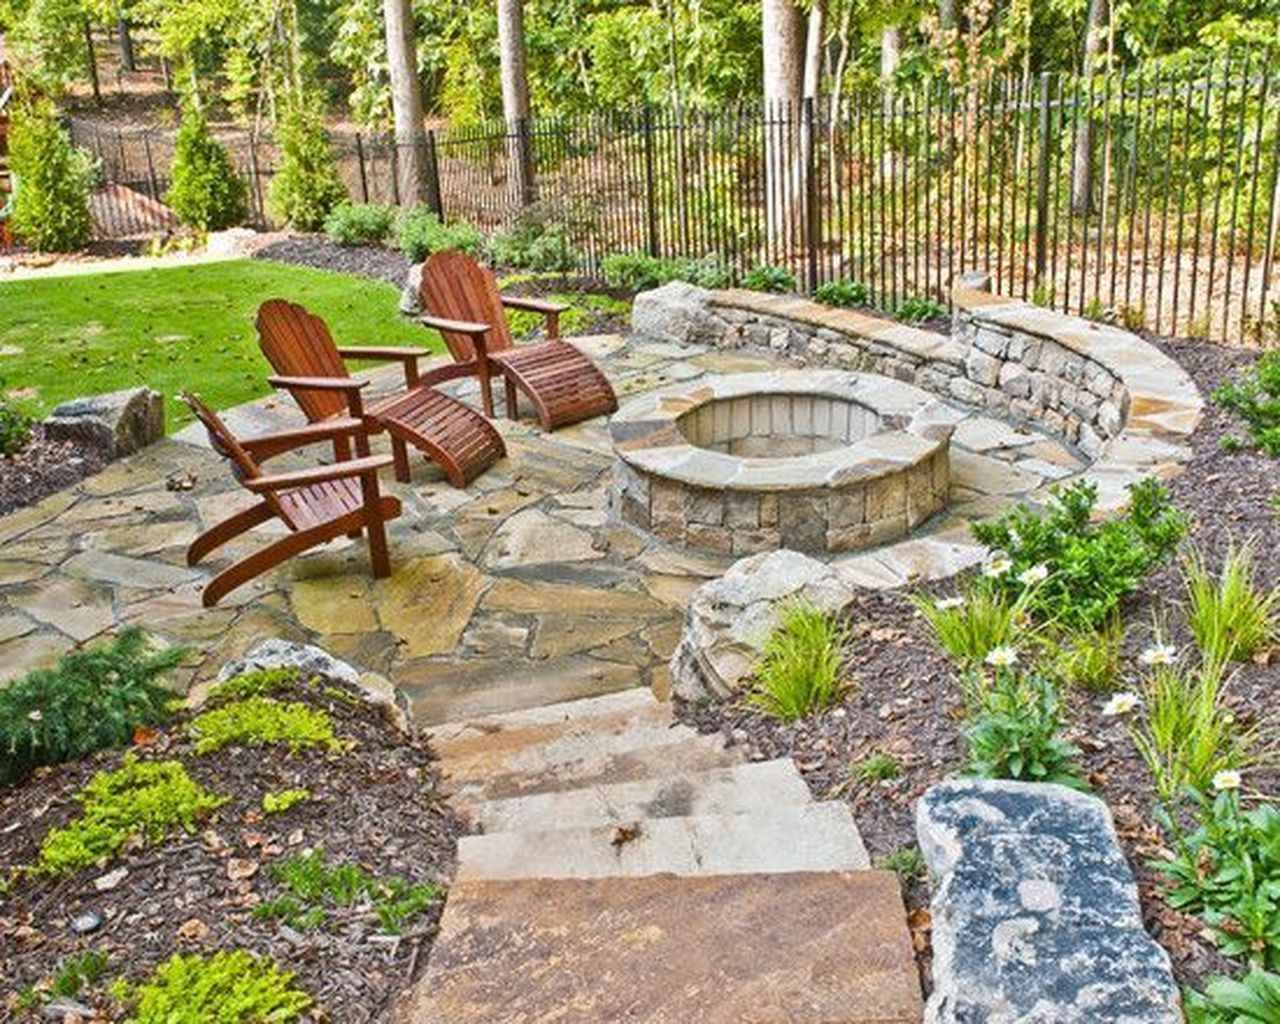 85 Outdoor Fire Pit Seating Design Ideas For Backyard Fire Pit Backyard Garden Fire Pit Fire Pit Seating